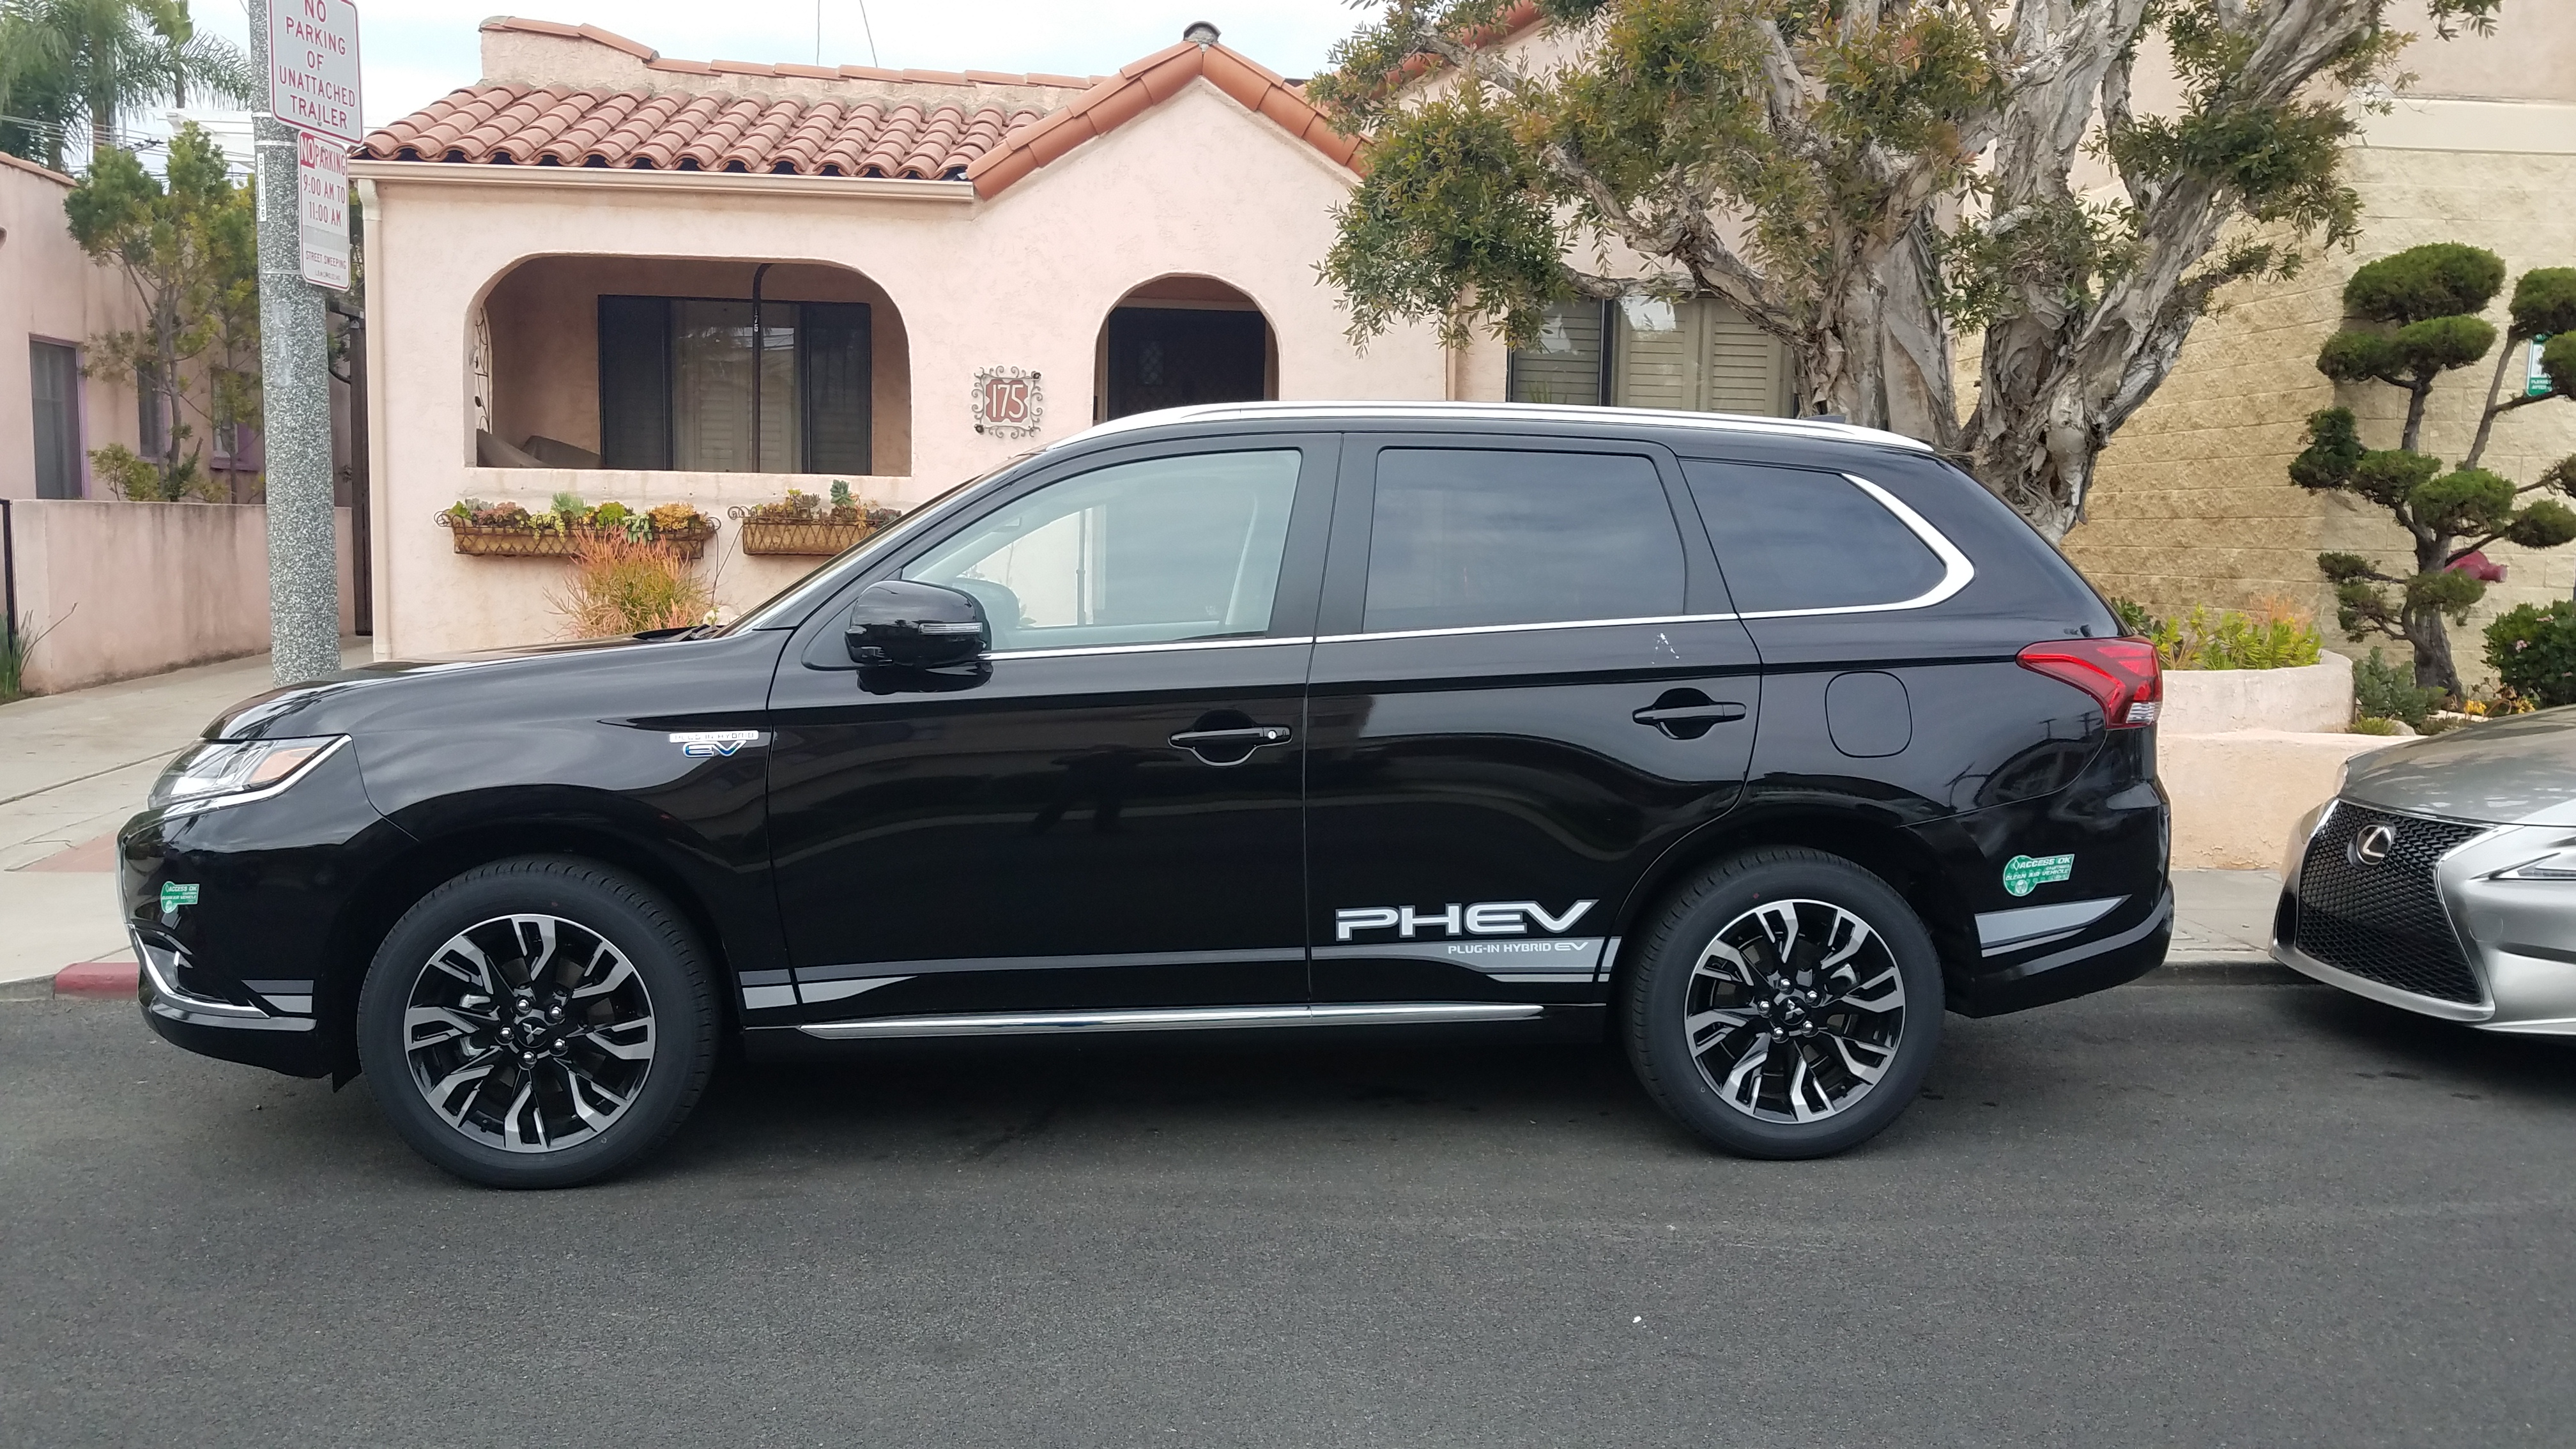 cleantechnica test drives the brand new 2018 mitsubishi outlander phev for you cleantechnica. Black Bedroom Furniture Sets. Home Design Ideas